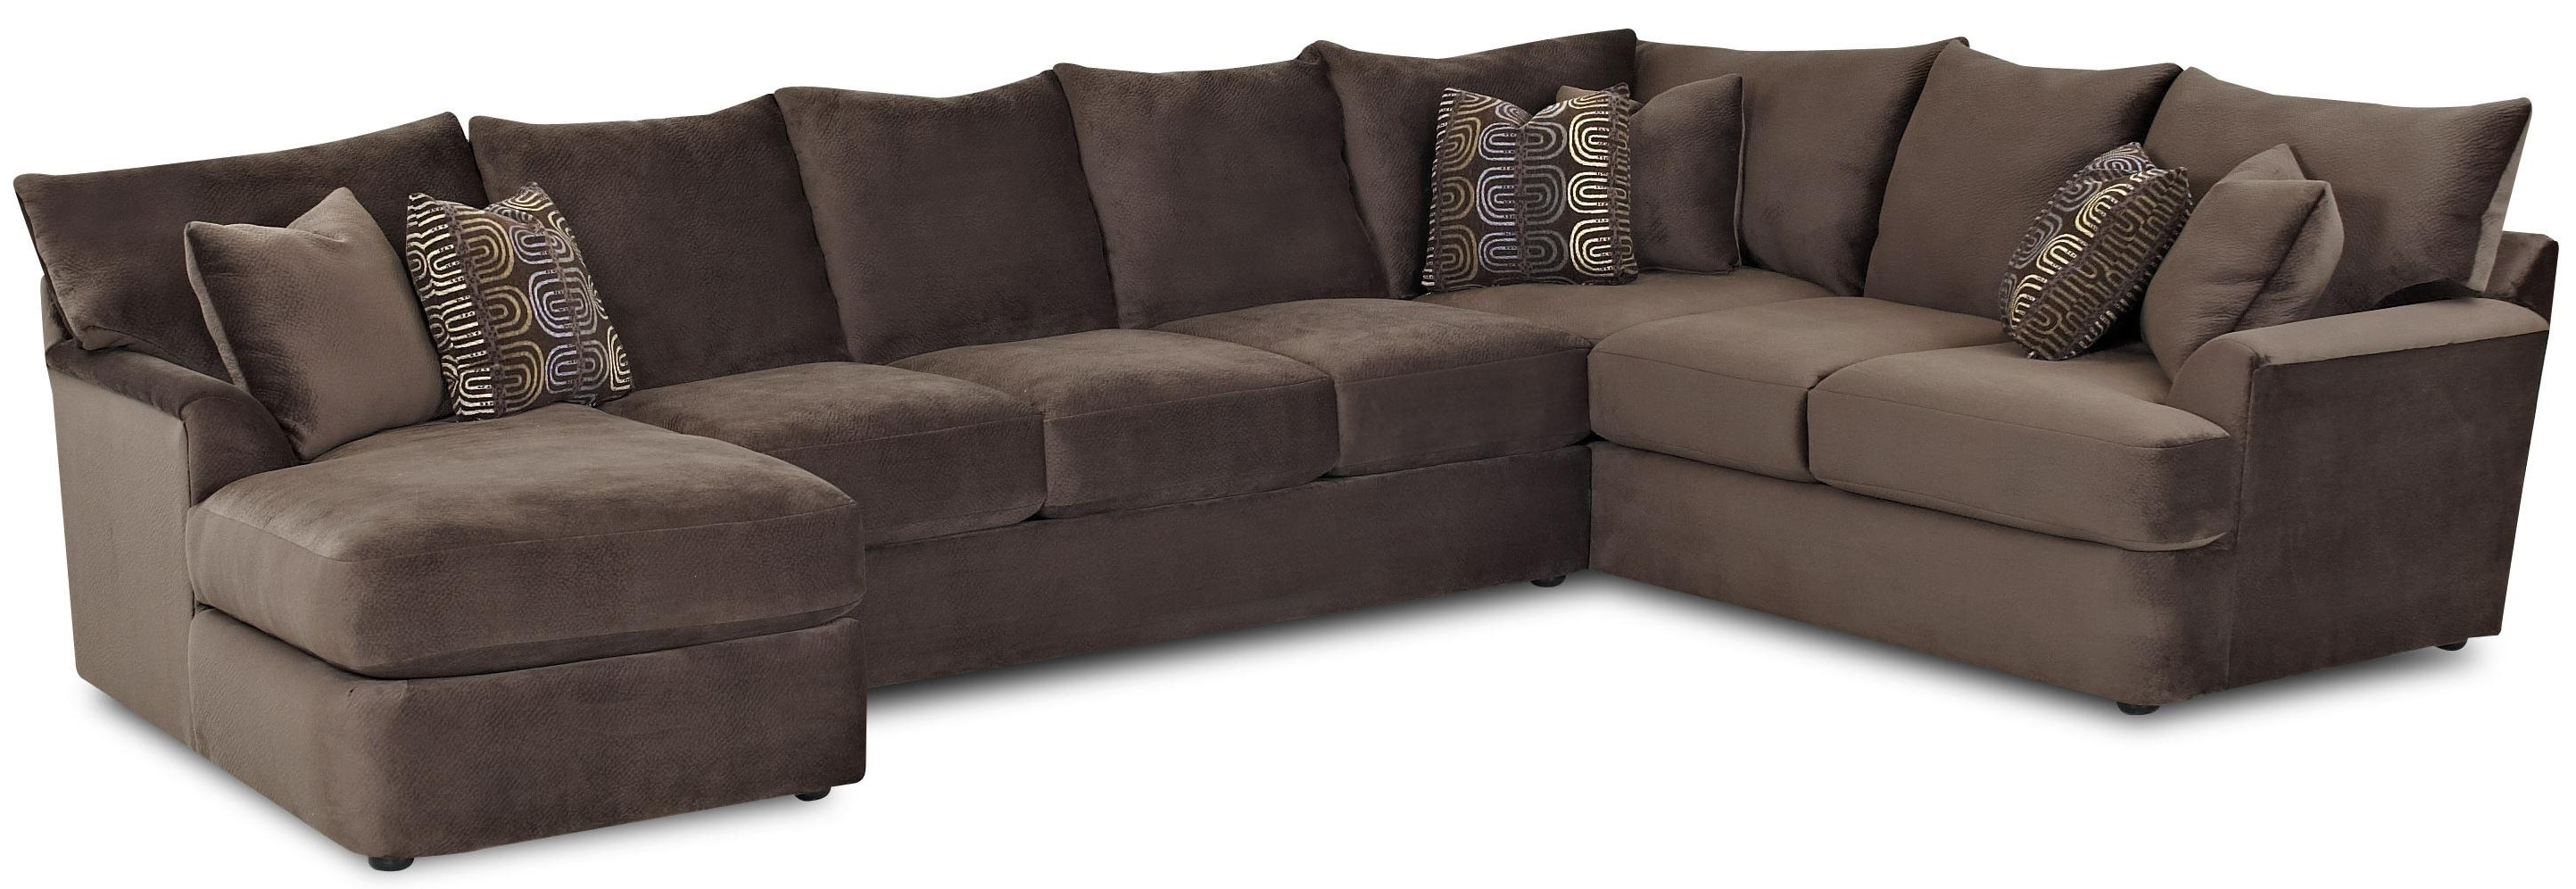 Most Recently Released Couch: Astonishing Wide Couches Oversized Sectional Couches, Wide For Wide Sofa Chairs (View 7 of 15)